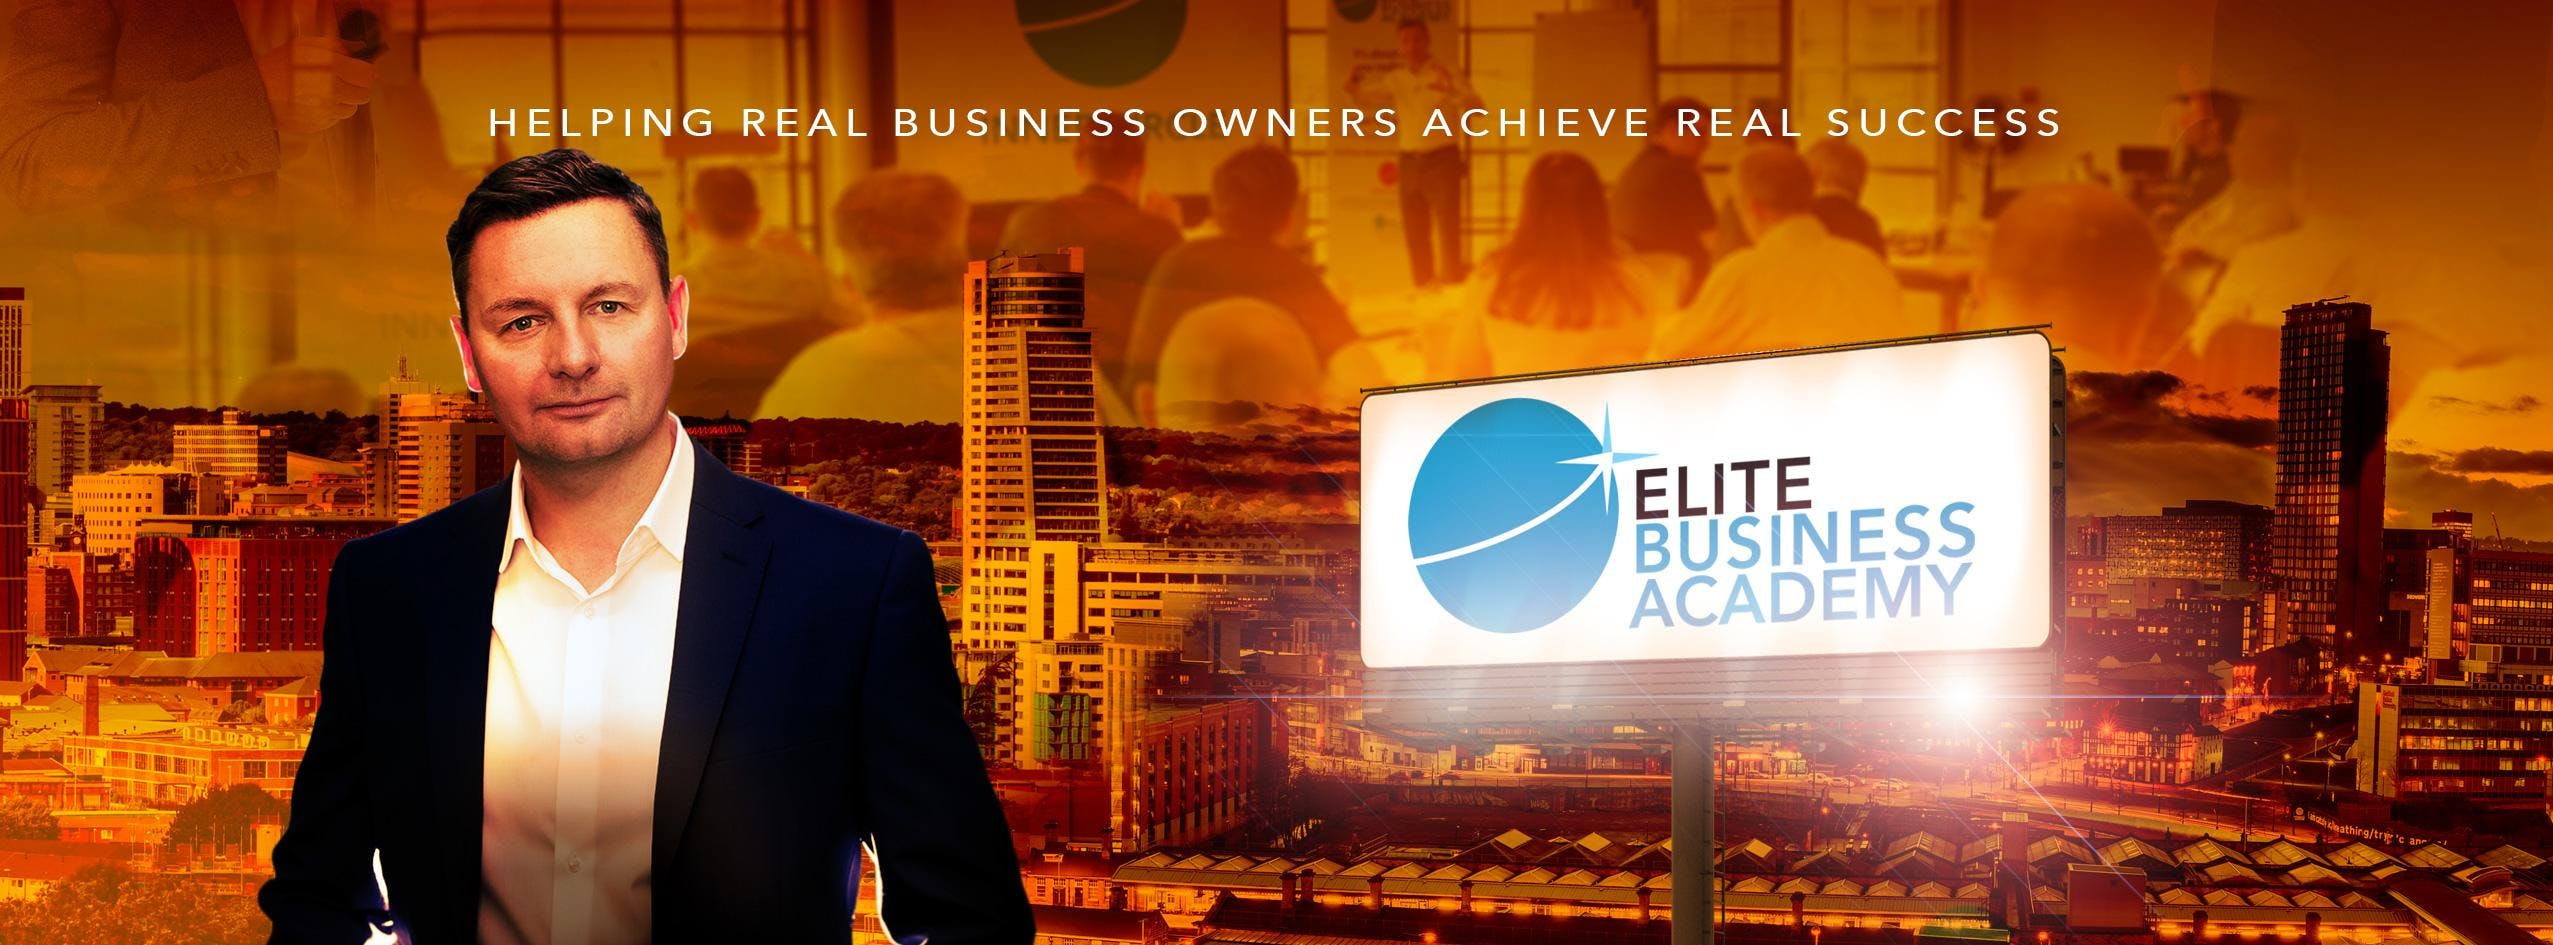 Elite Business Academy - Hybrid Networking an